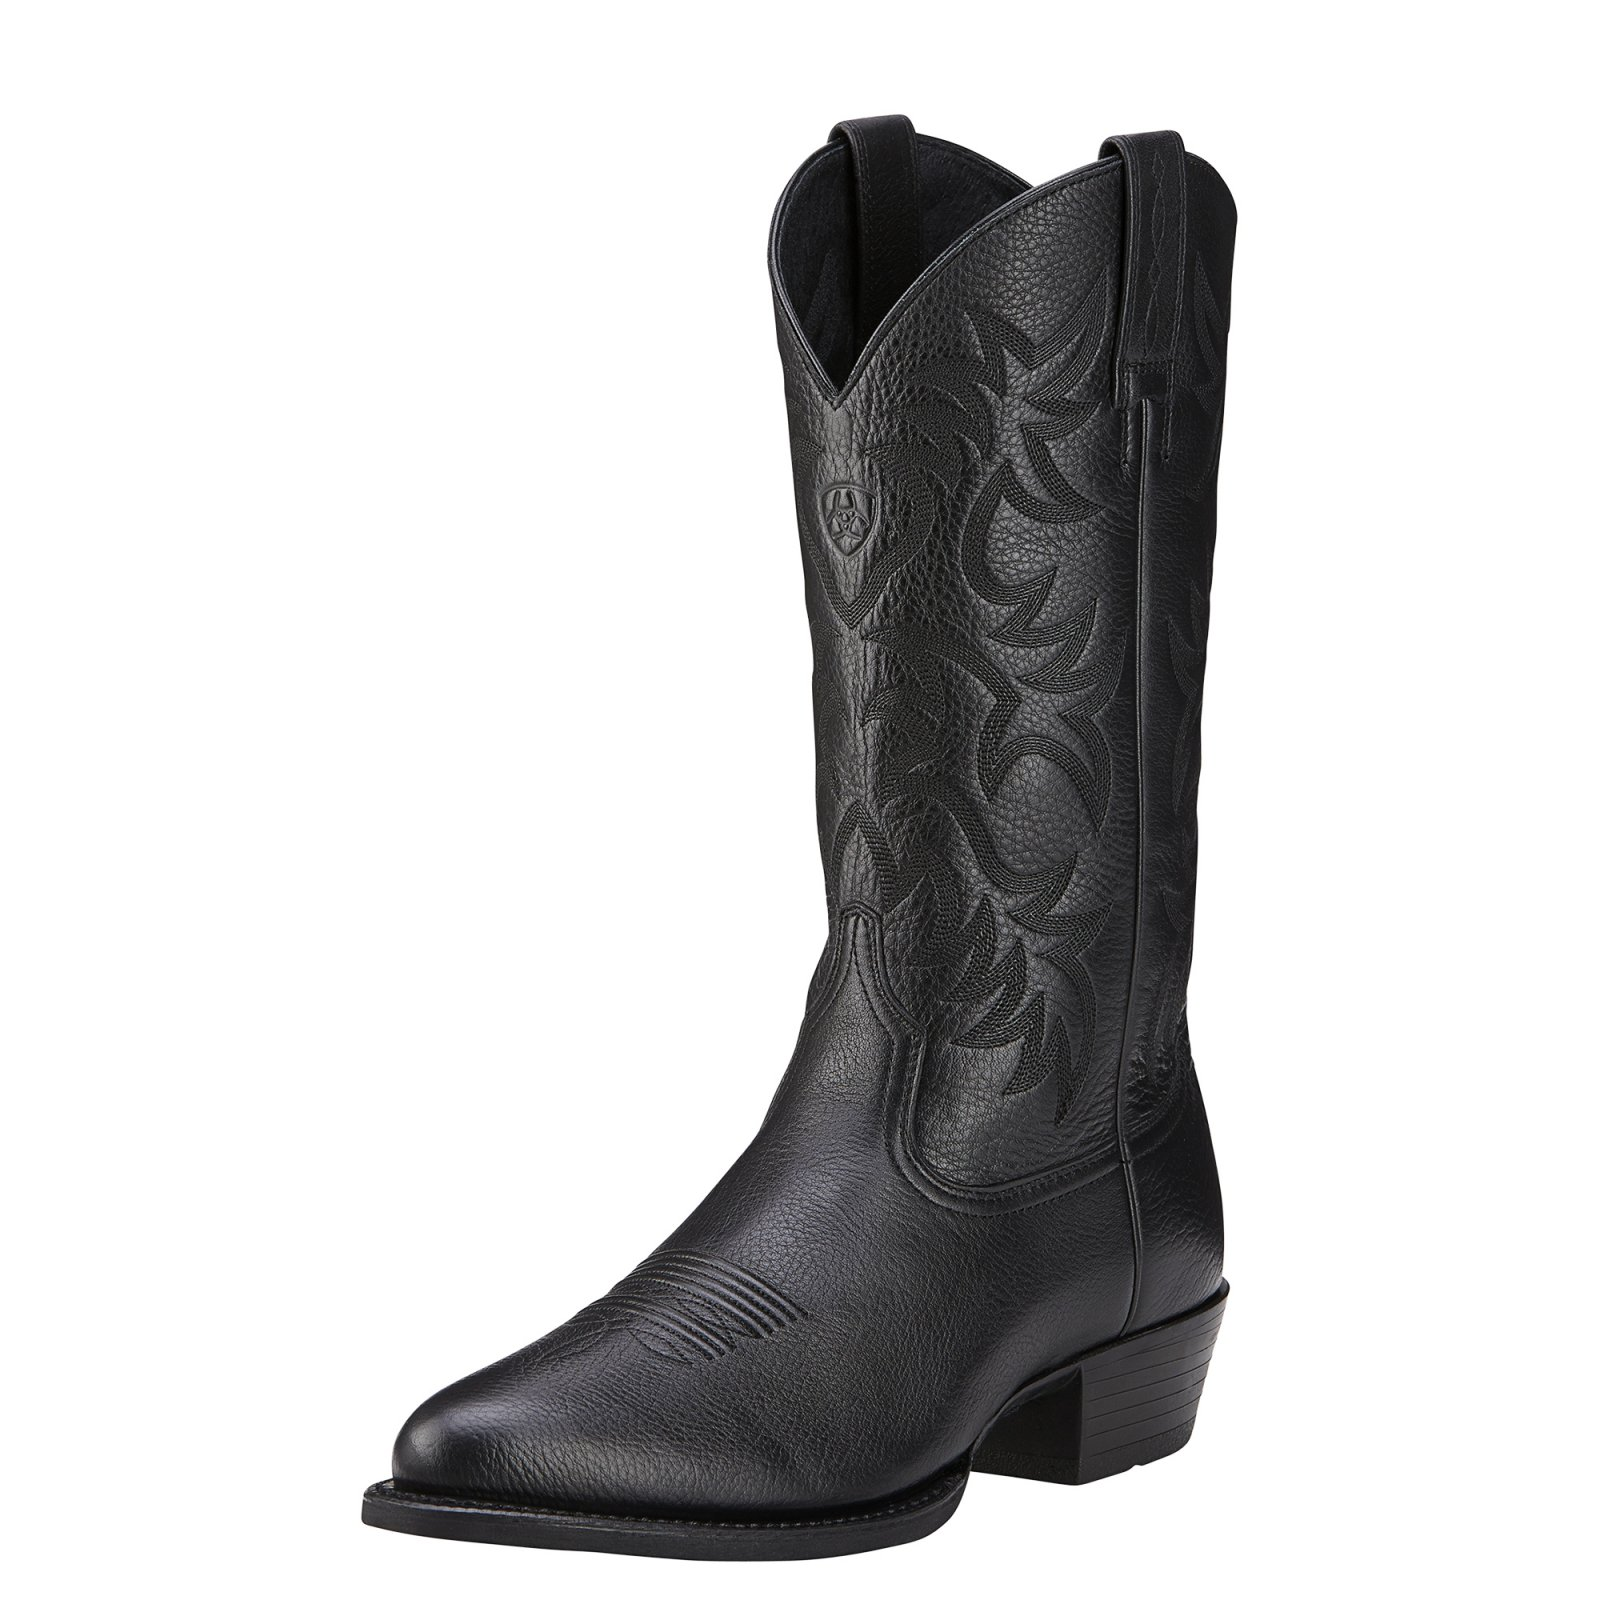 Heritage Western R-Toe from Ariat